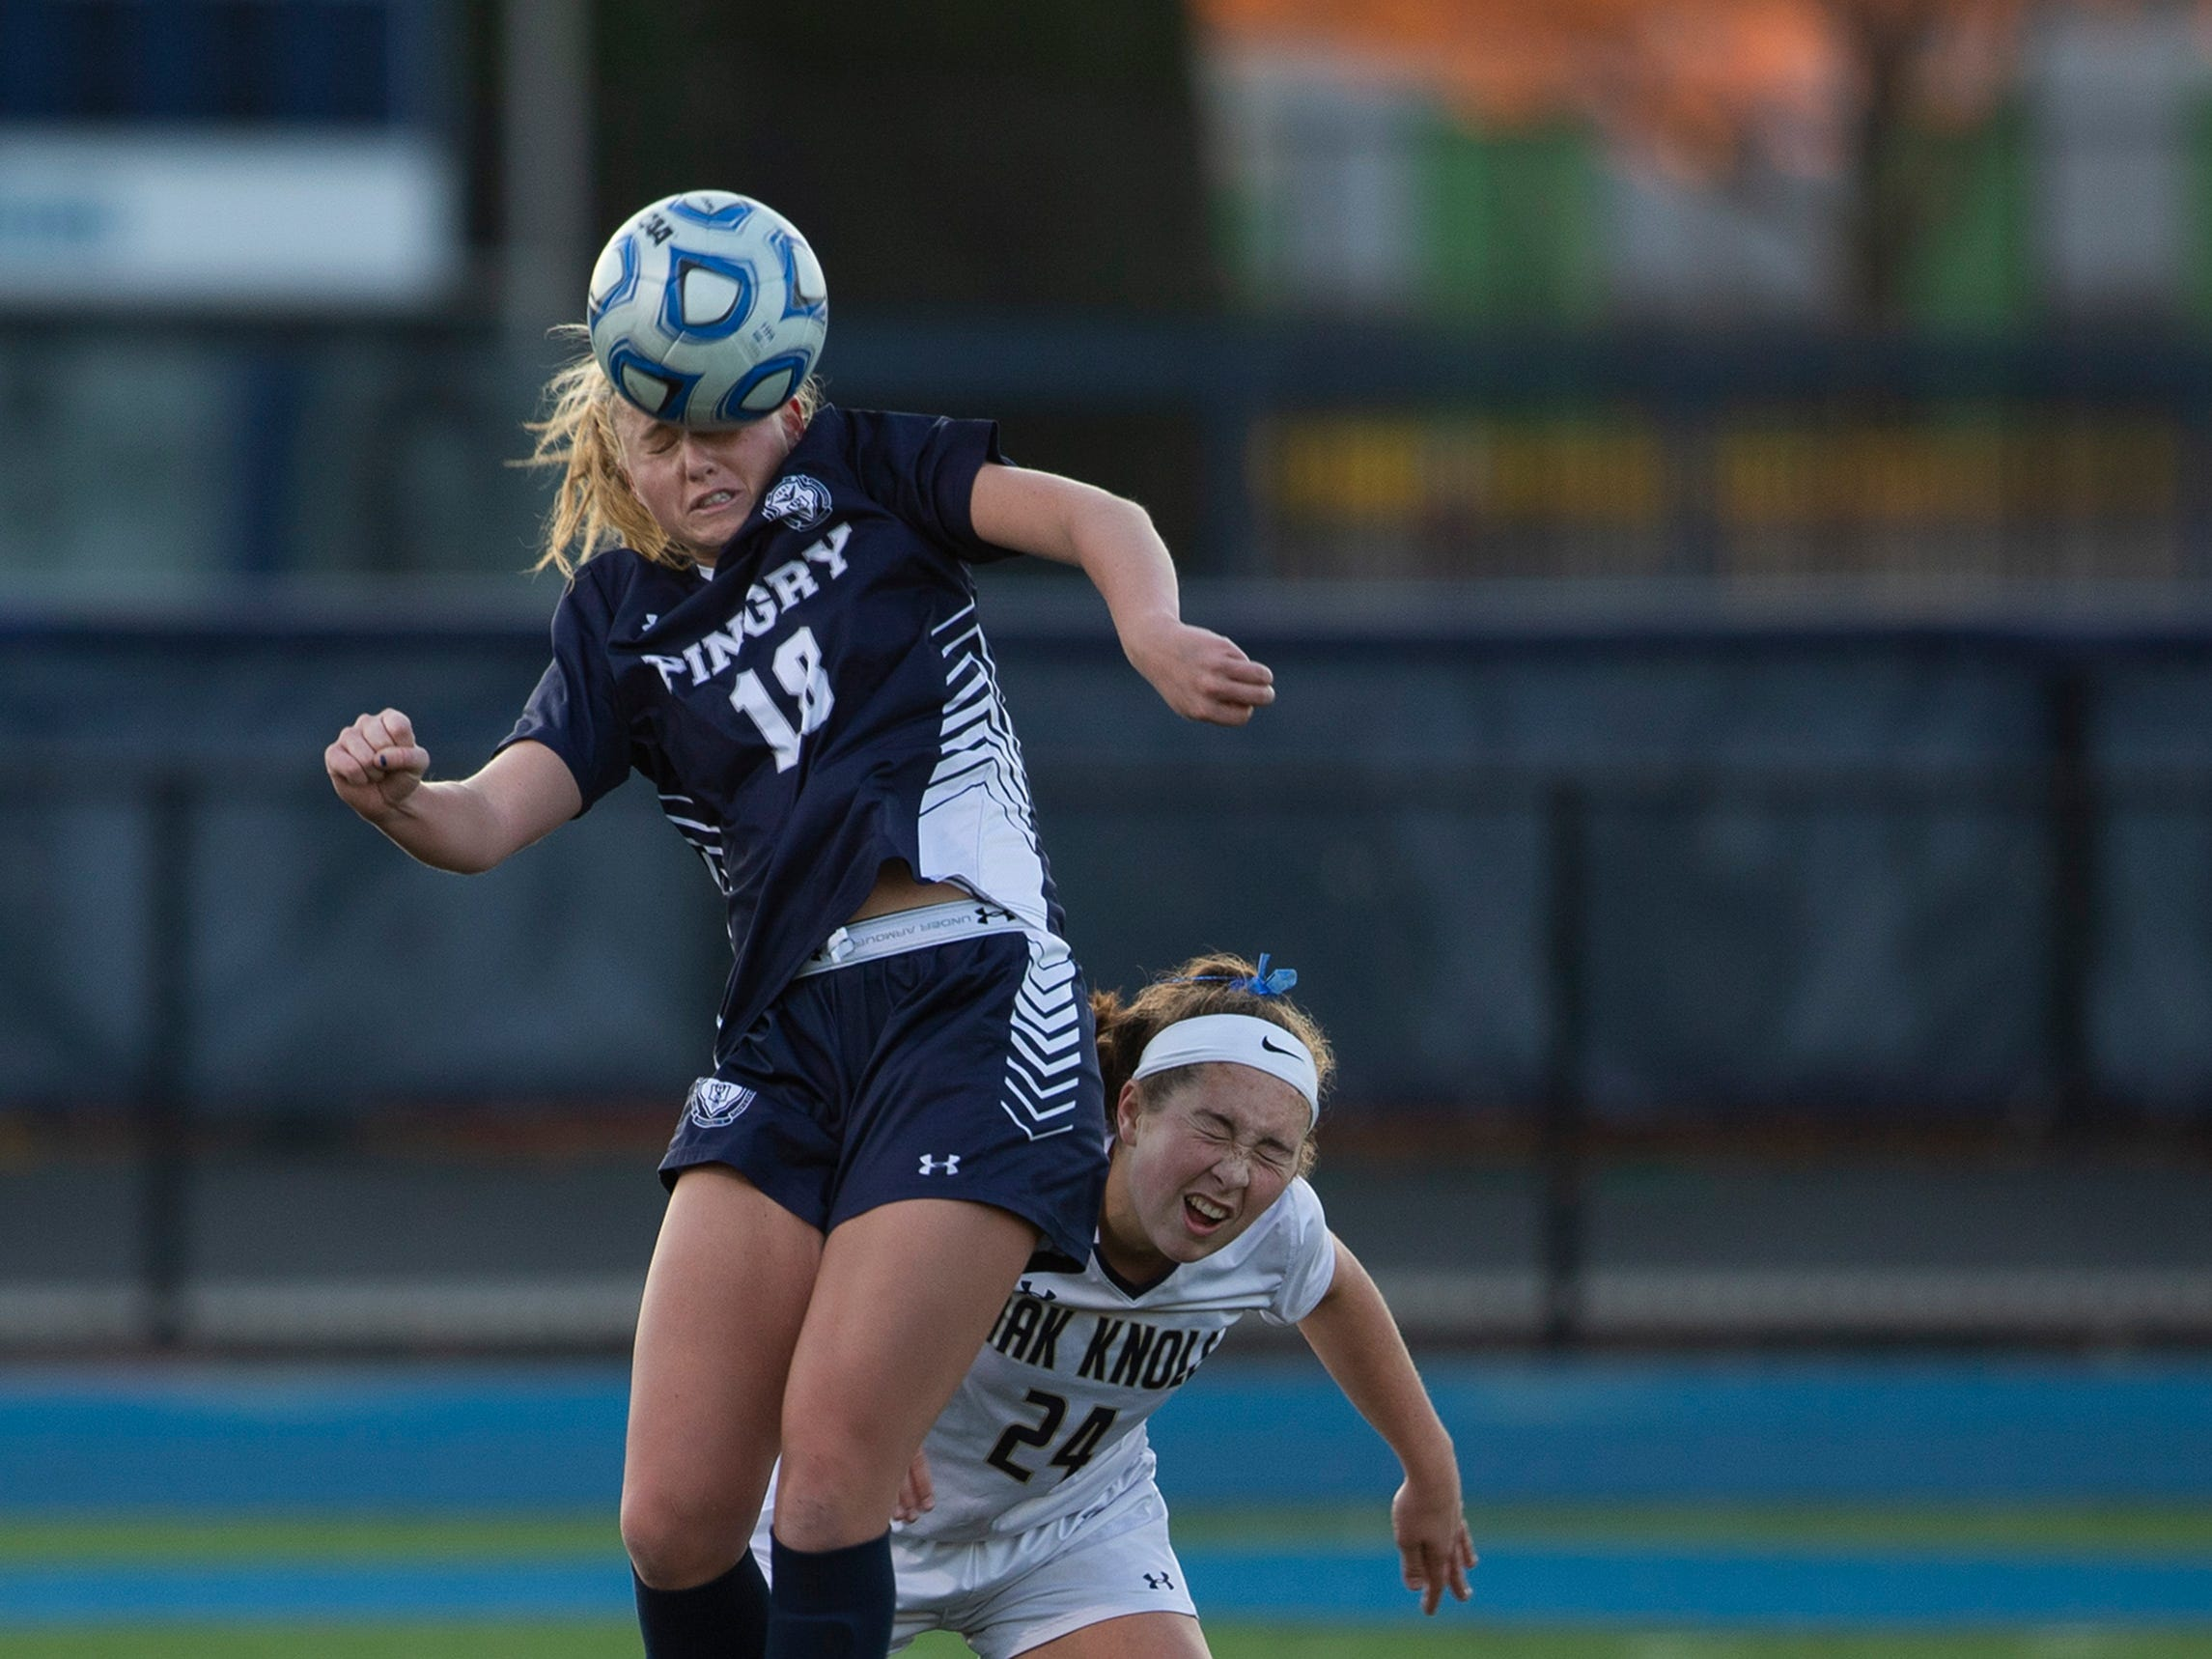 Pingry's Emma Capanna heads the ball during the second half against Oak Knoll in the Non-Public A final on Sunday, Nov. 11, 2018 at Kean University.